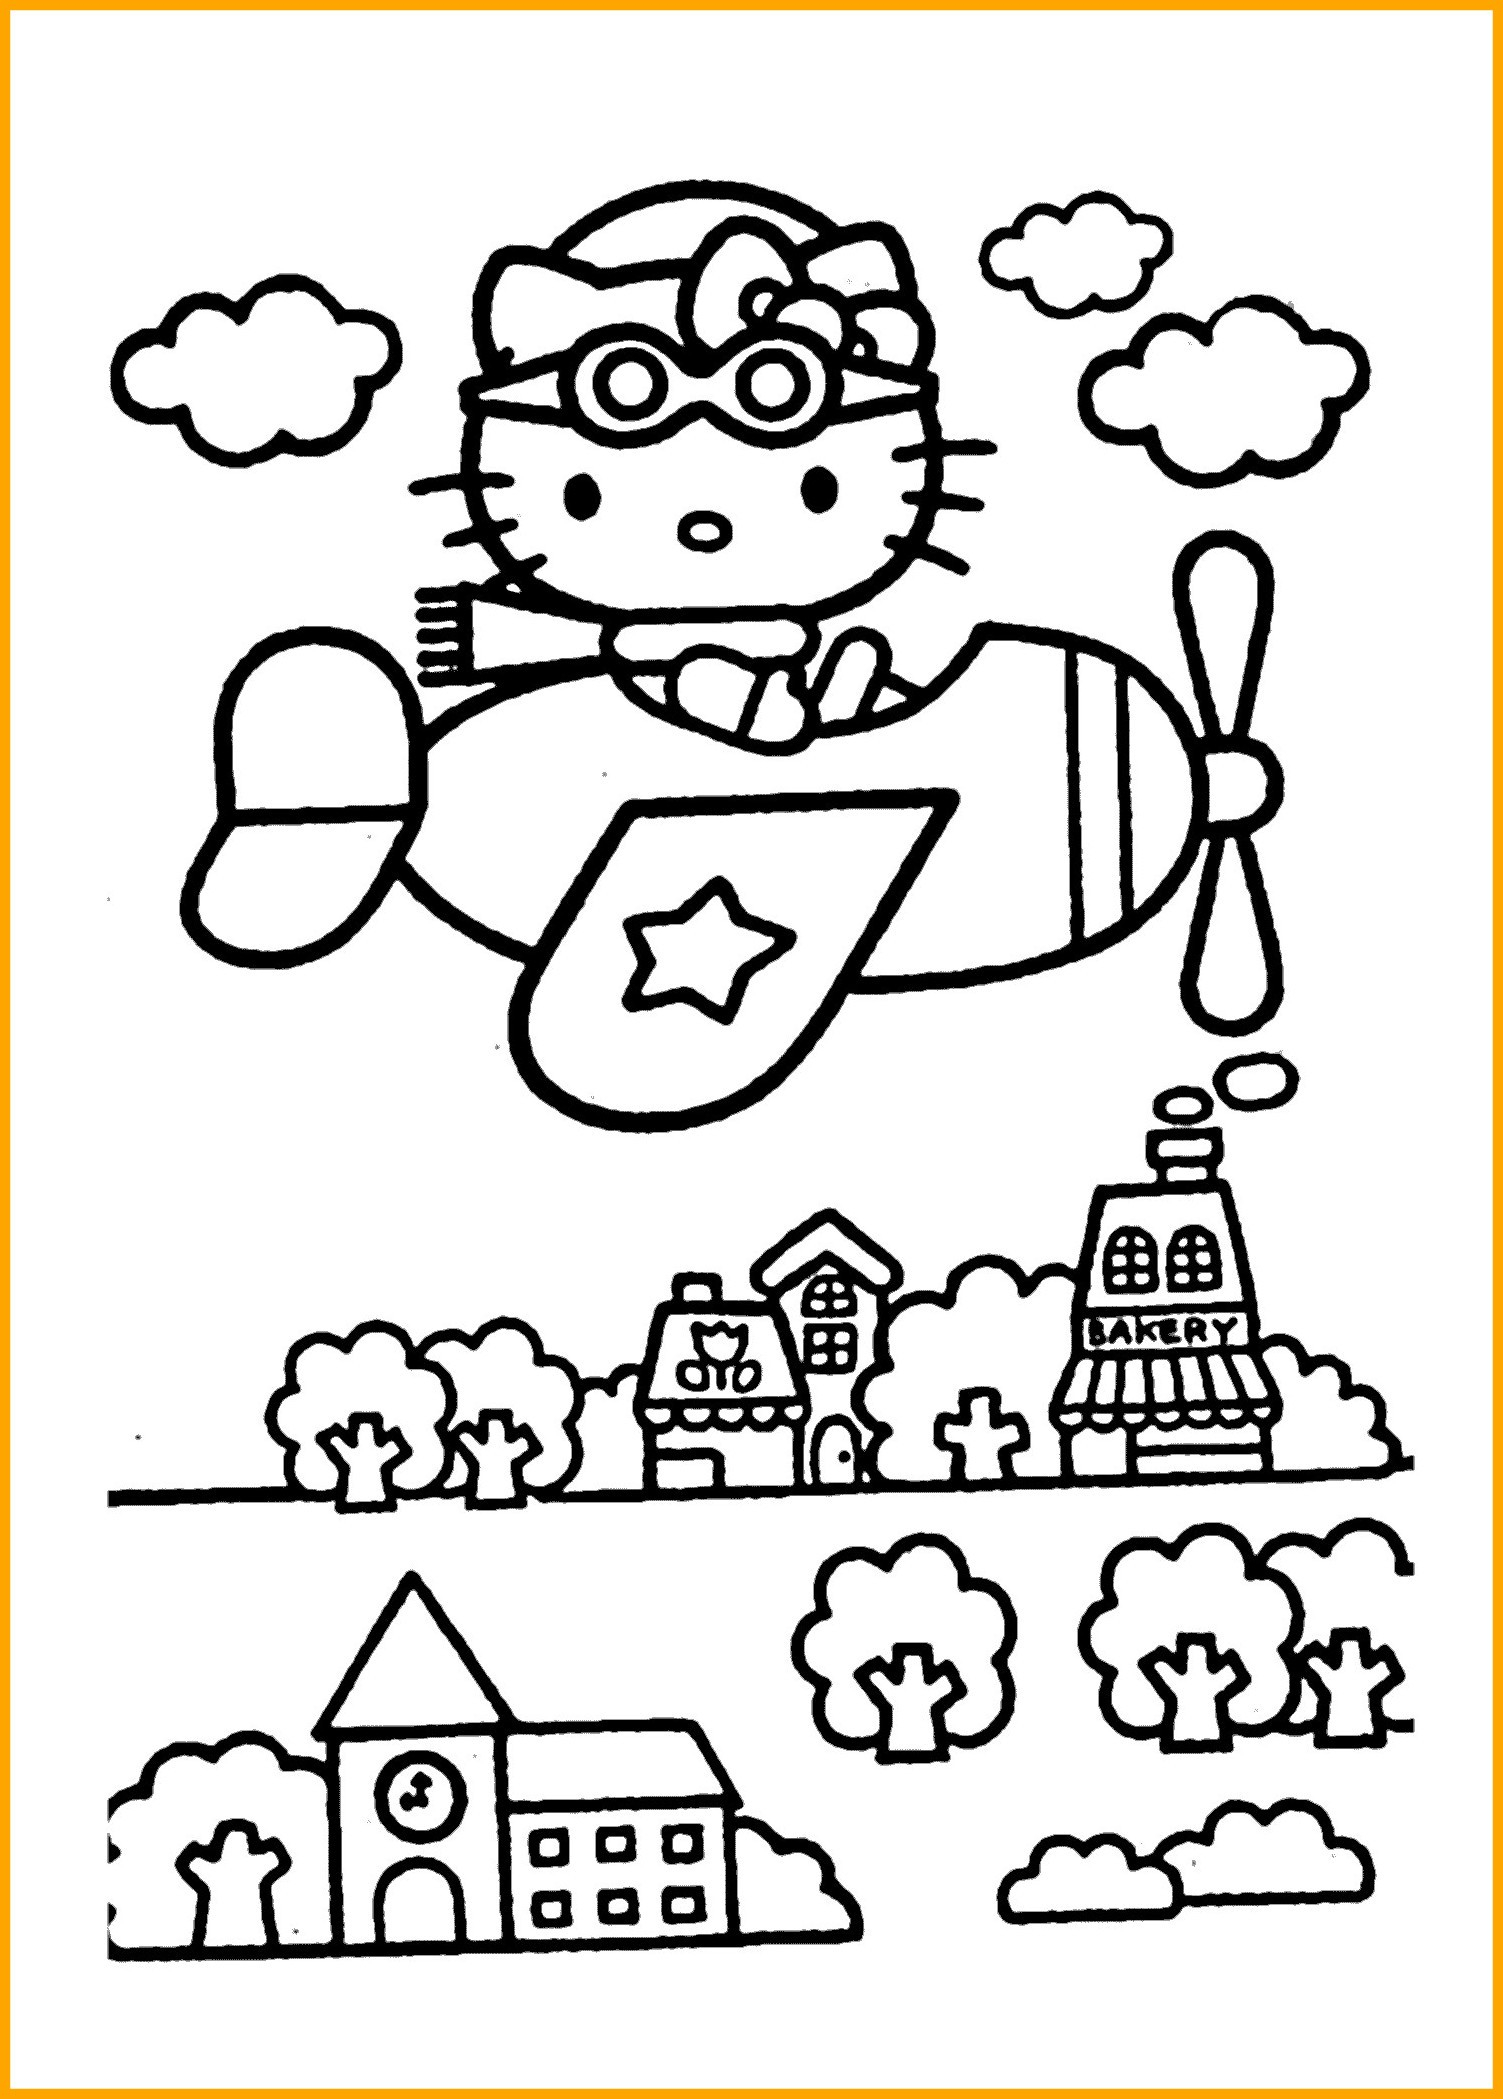 Get Well Coloring Pages Inspiring Get Well Soon Coloring Pages Amazing Greetings Printable